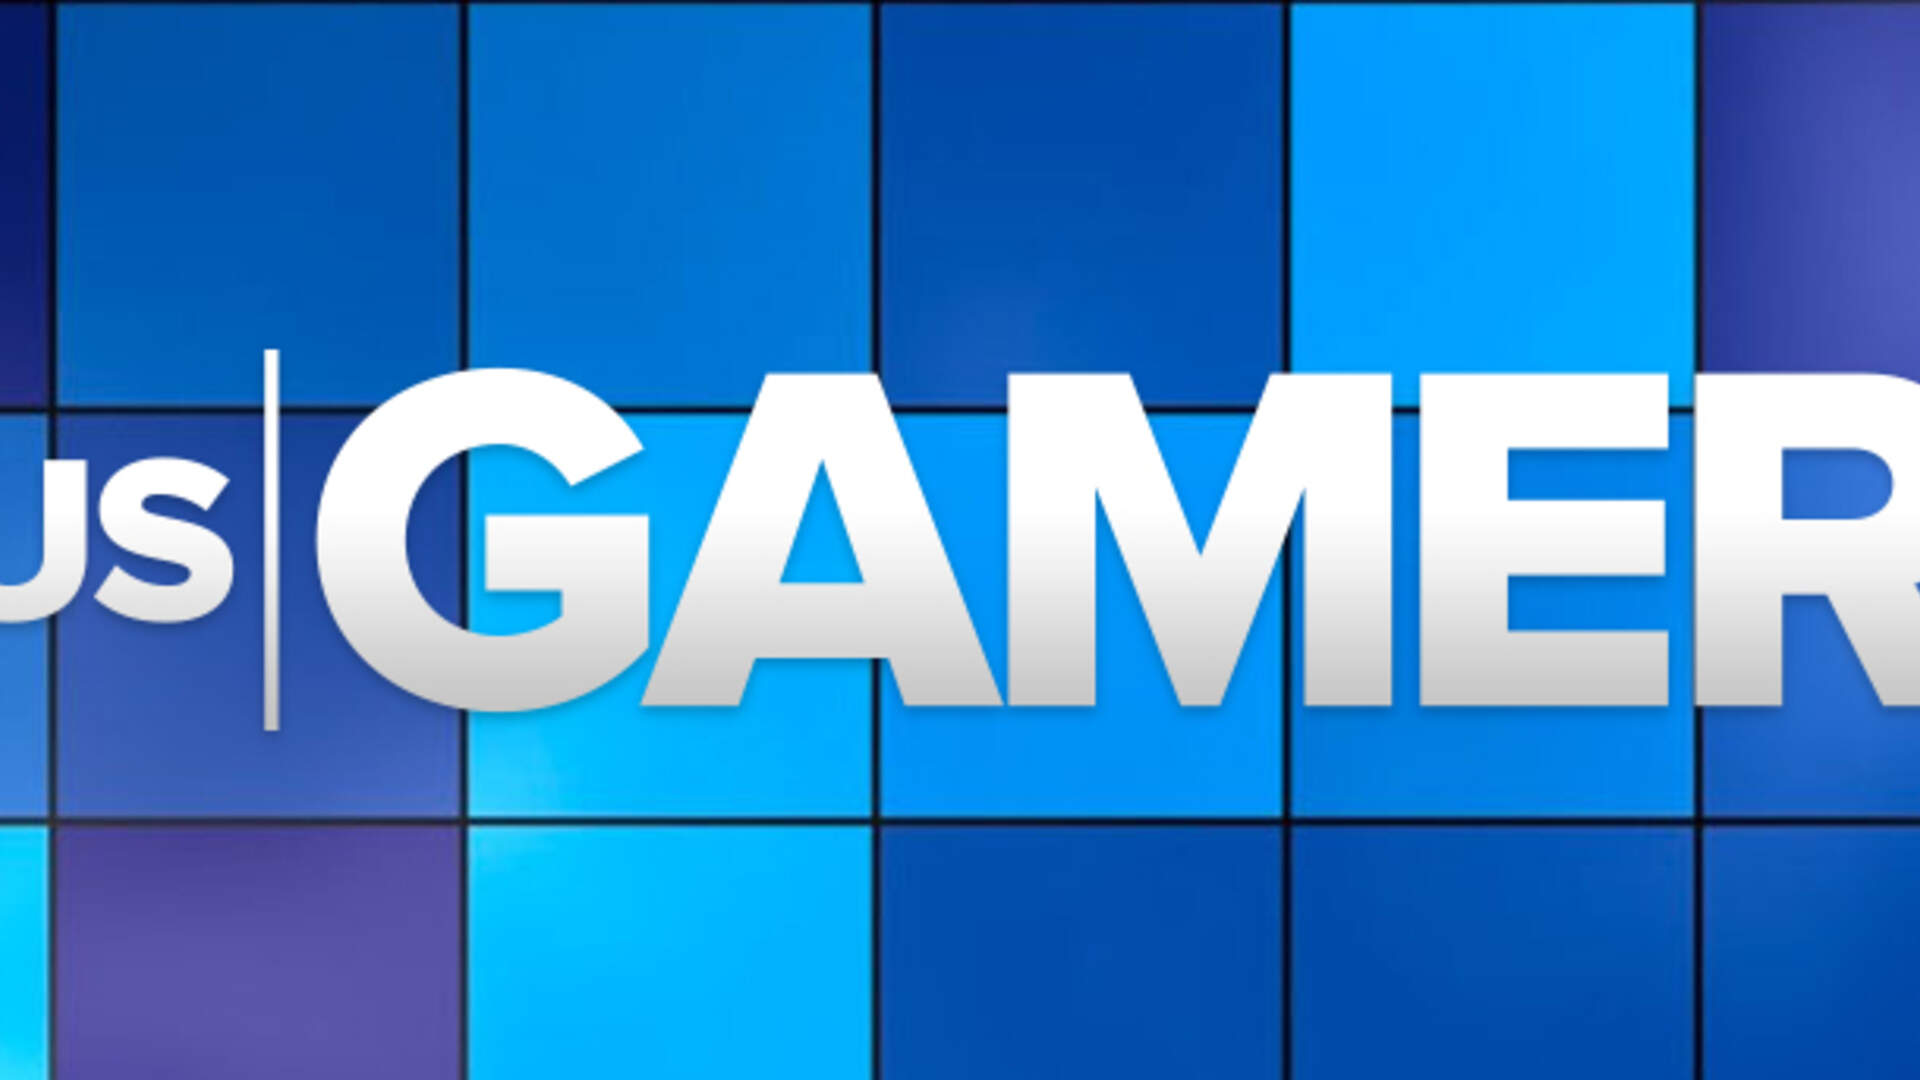 USgamer Publisher Gamer Network Acquired by PAX Producer, ReedPop